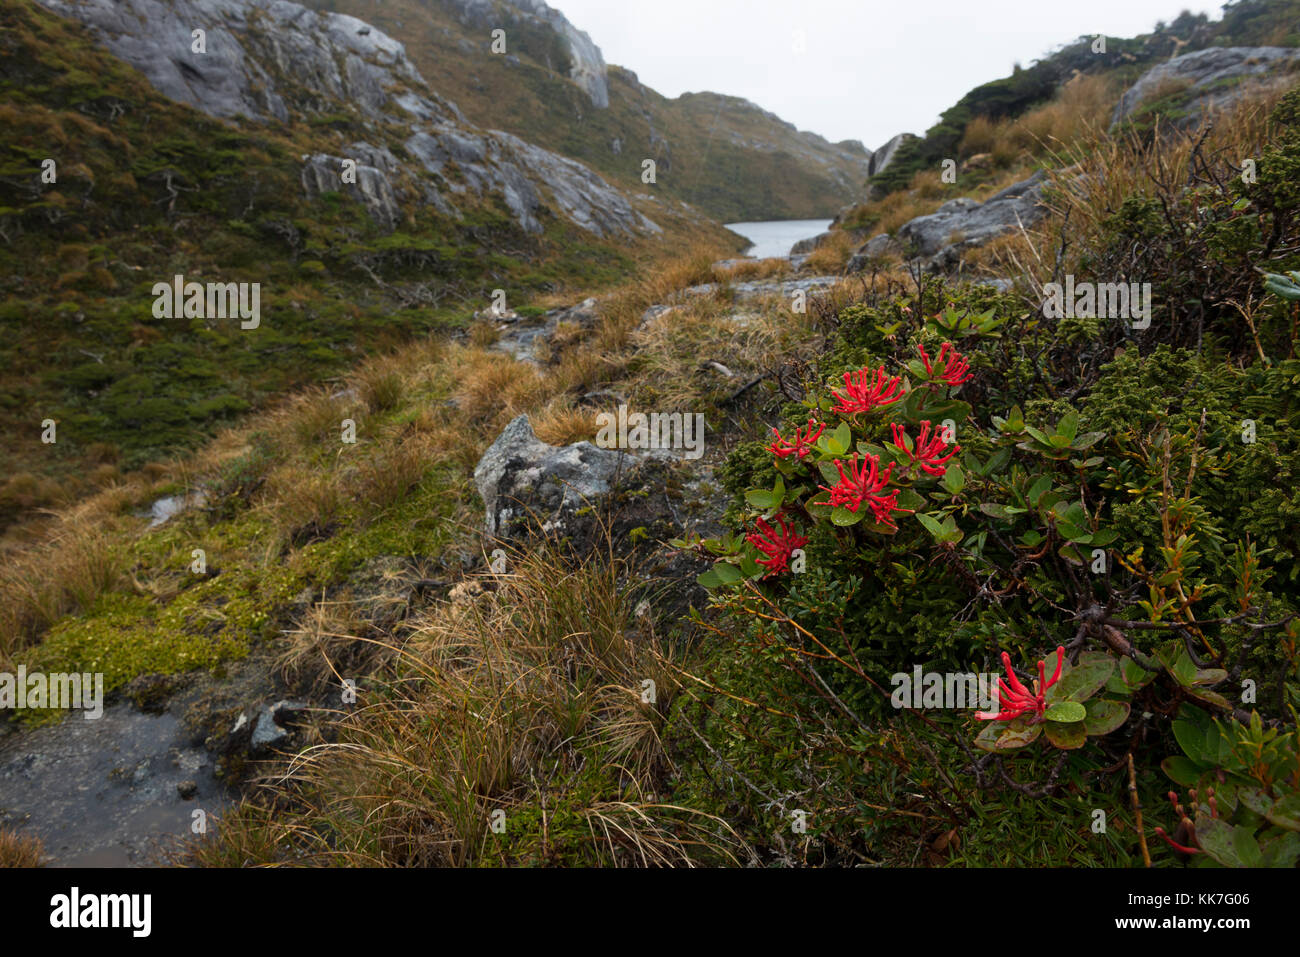 Flower bloom in a remote island in Southern Chile fjords - Stock Image